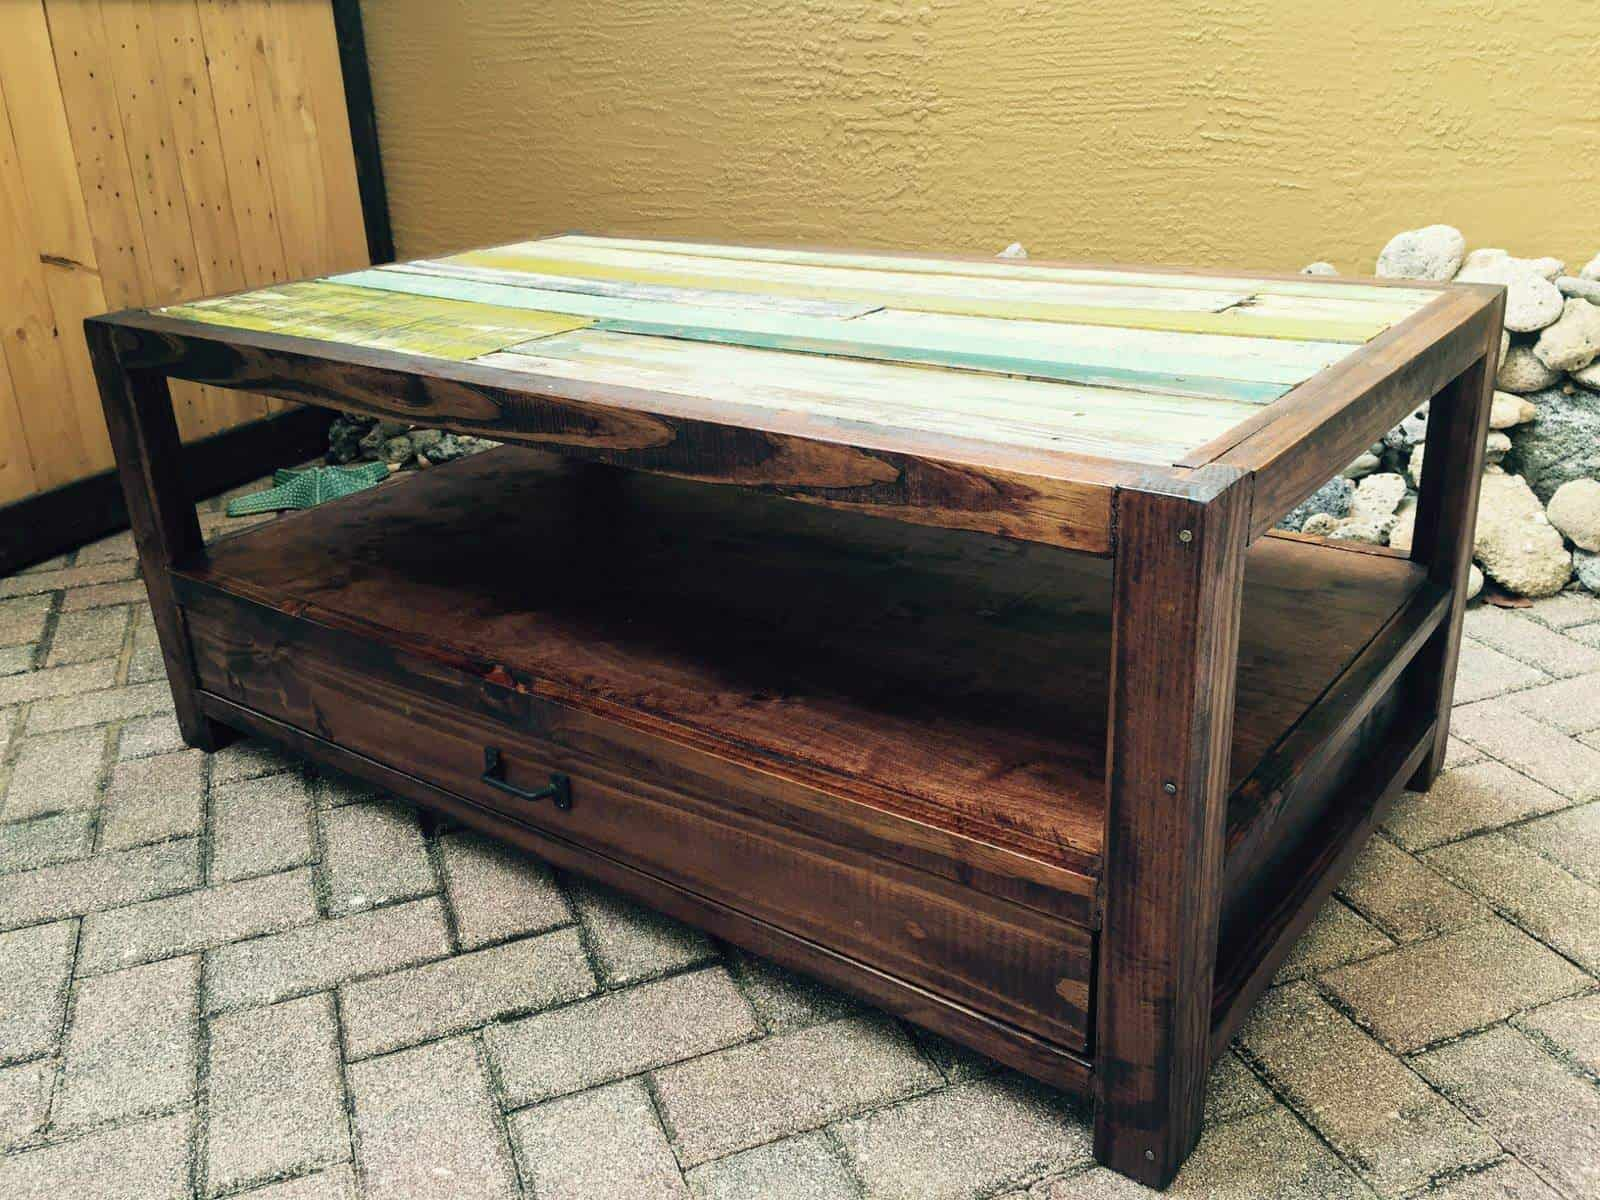 Pallets & Reclaimed Wood For A Coffee Table • 1001 Pallets